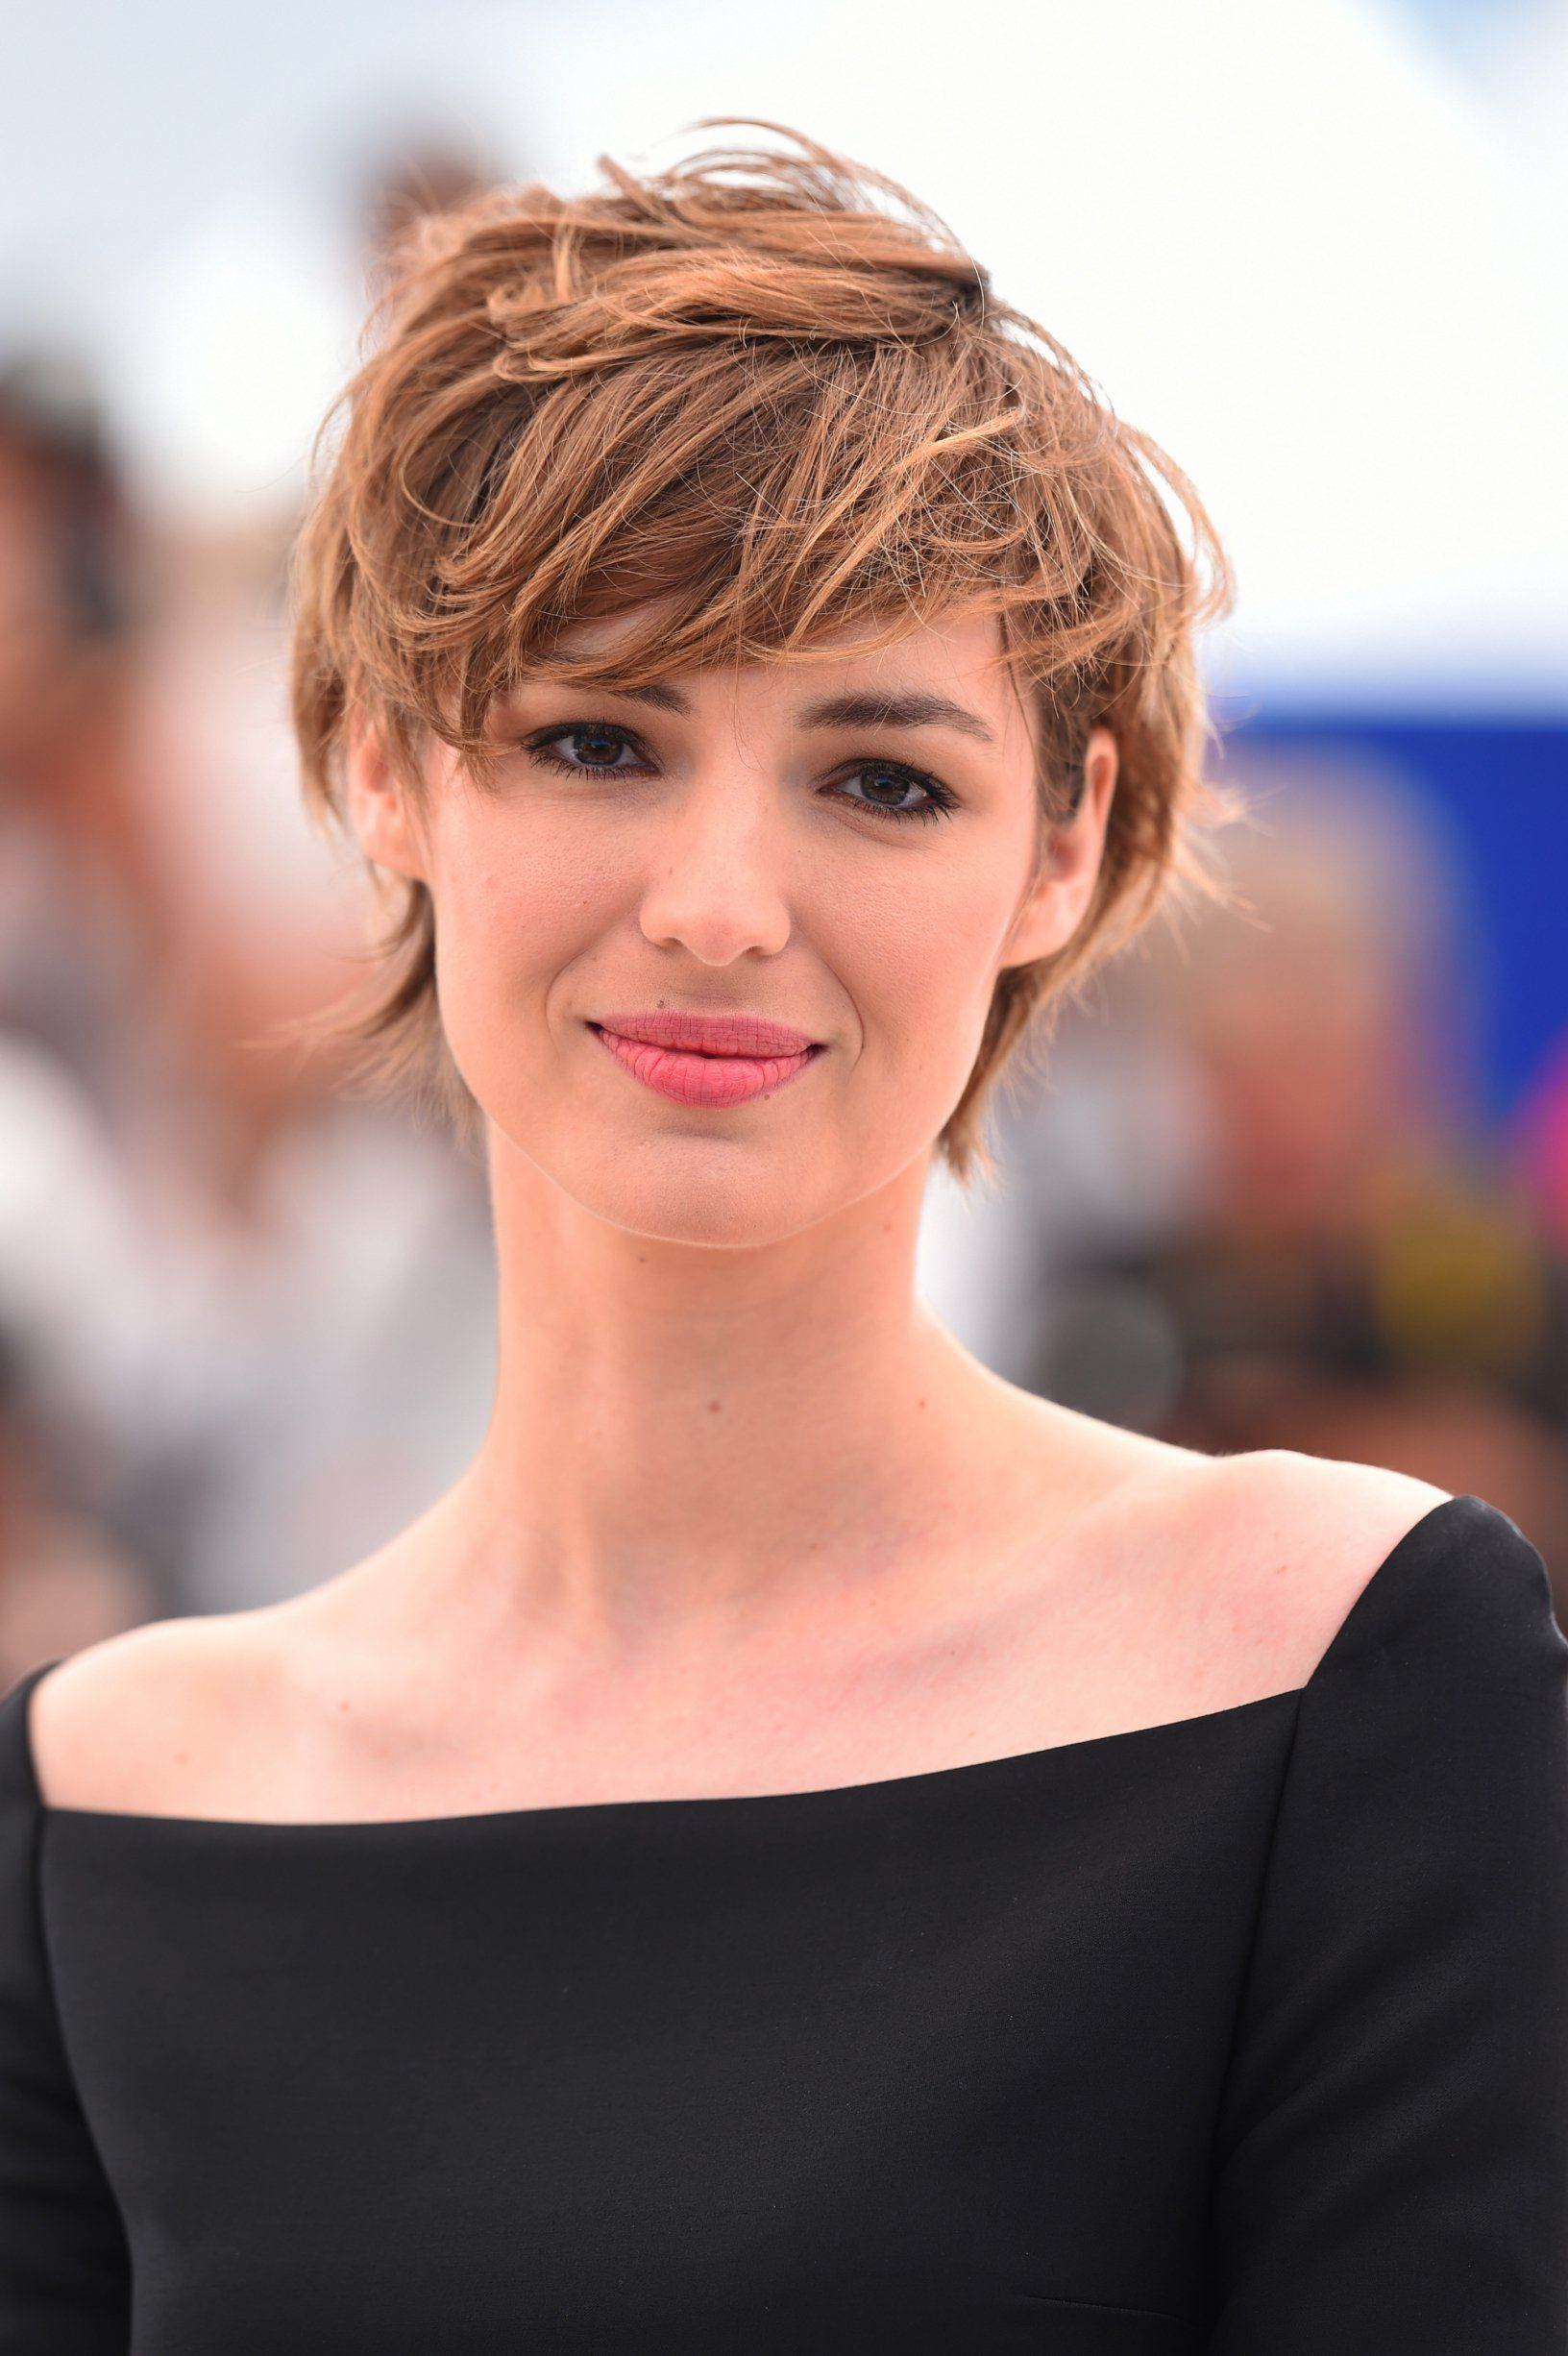 Coupe Cheveux Courte Femme La Coupe Pixie De Louise Bourgoin Beautiful Sexy And